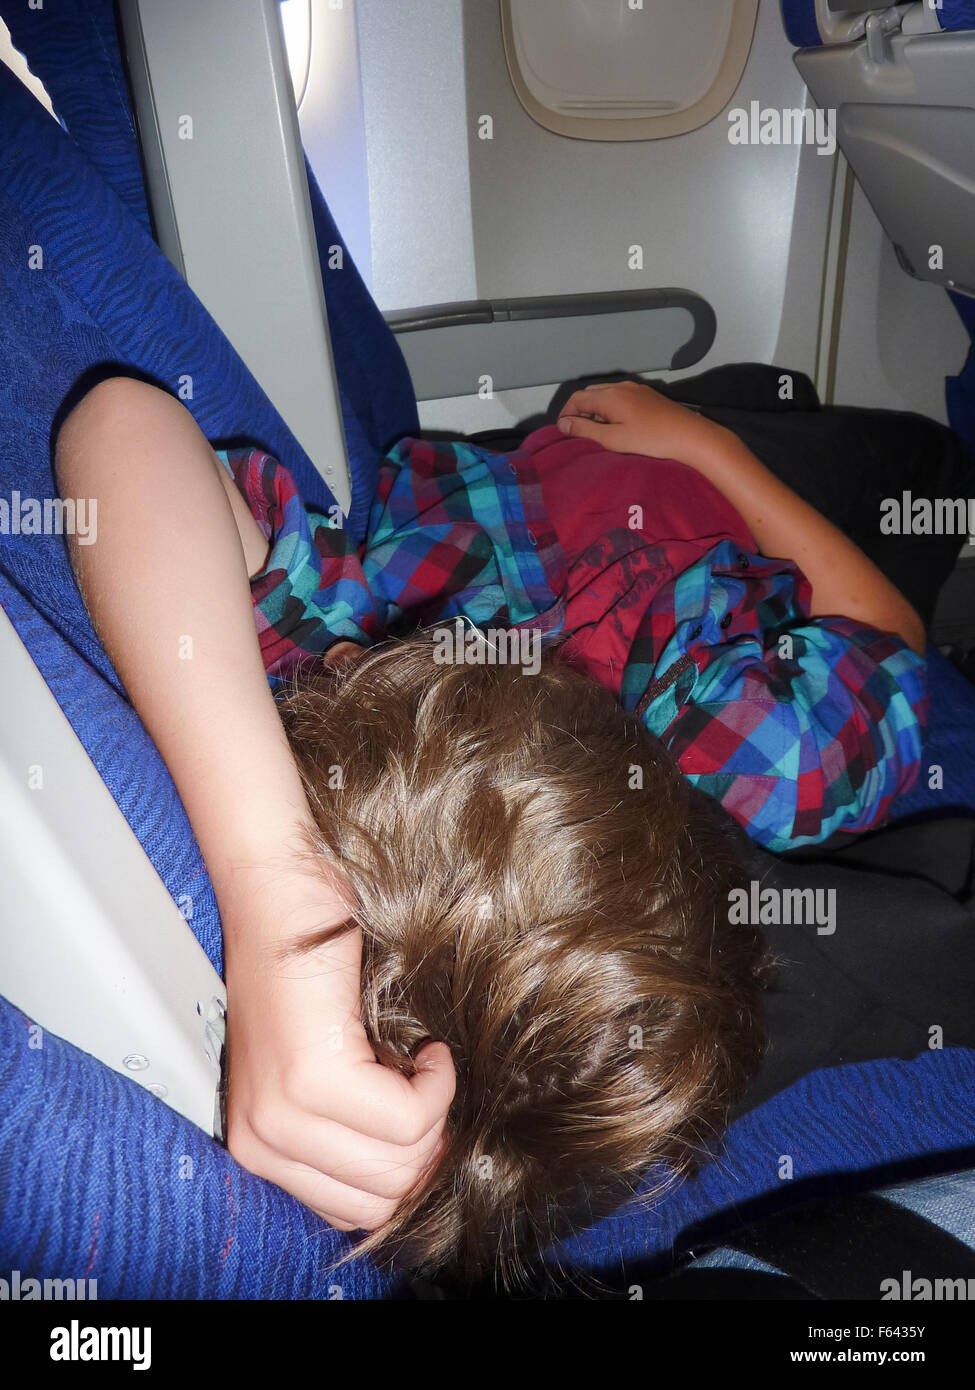 young boy sleeping on a long haul flight - Stock Image